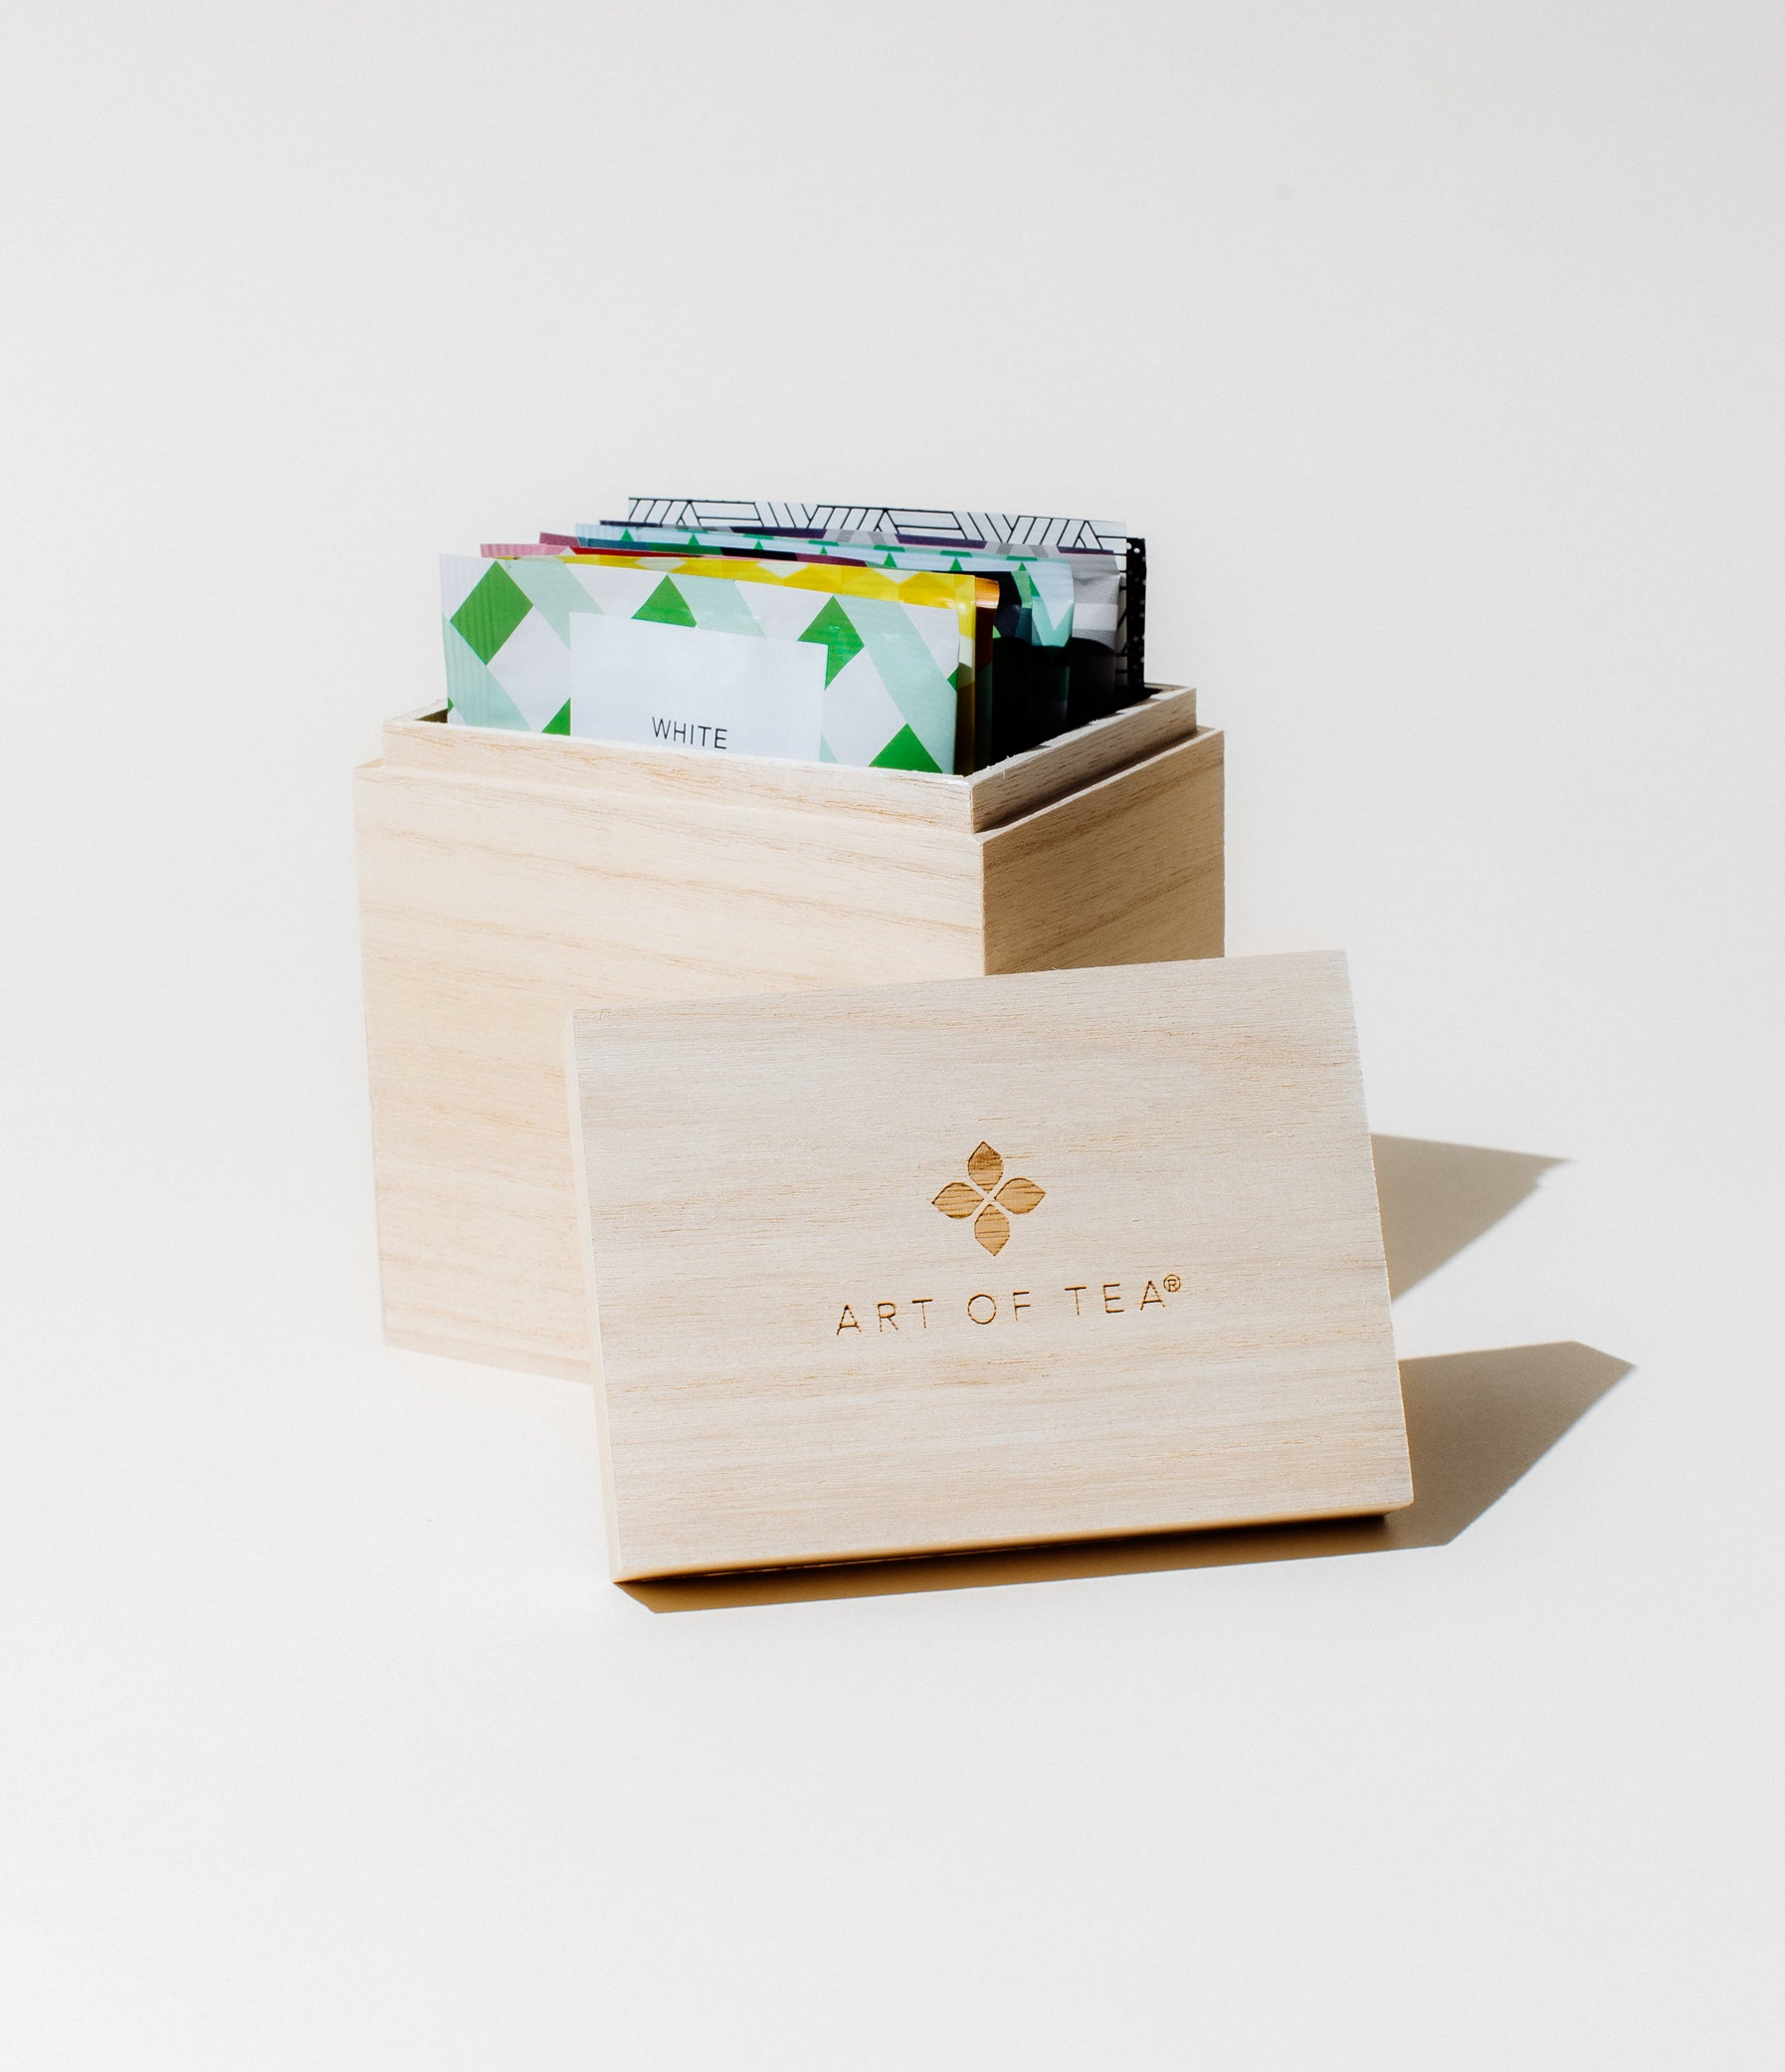 Branded Wood Box Teabags Packaged Teas by Art of Tea